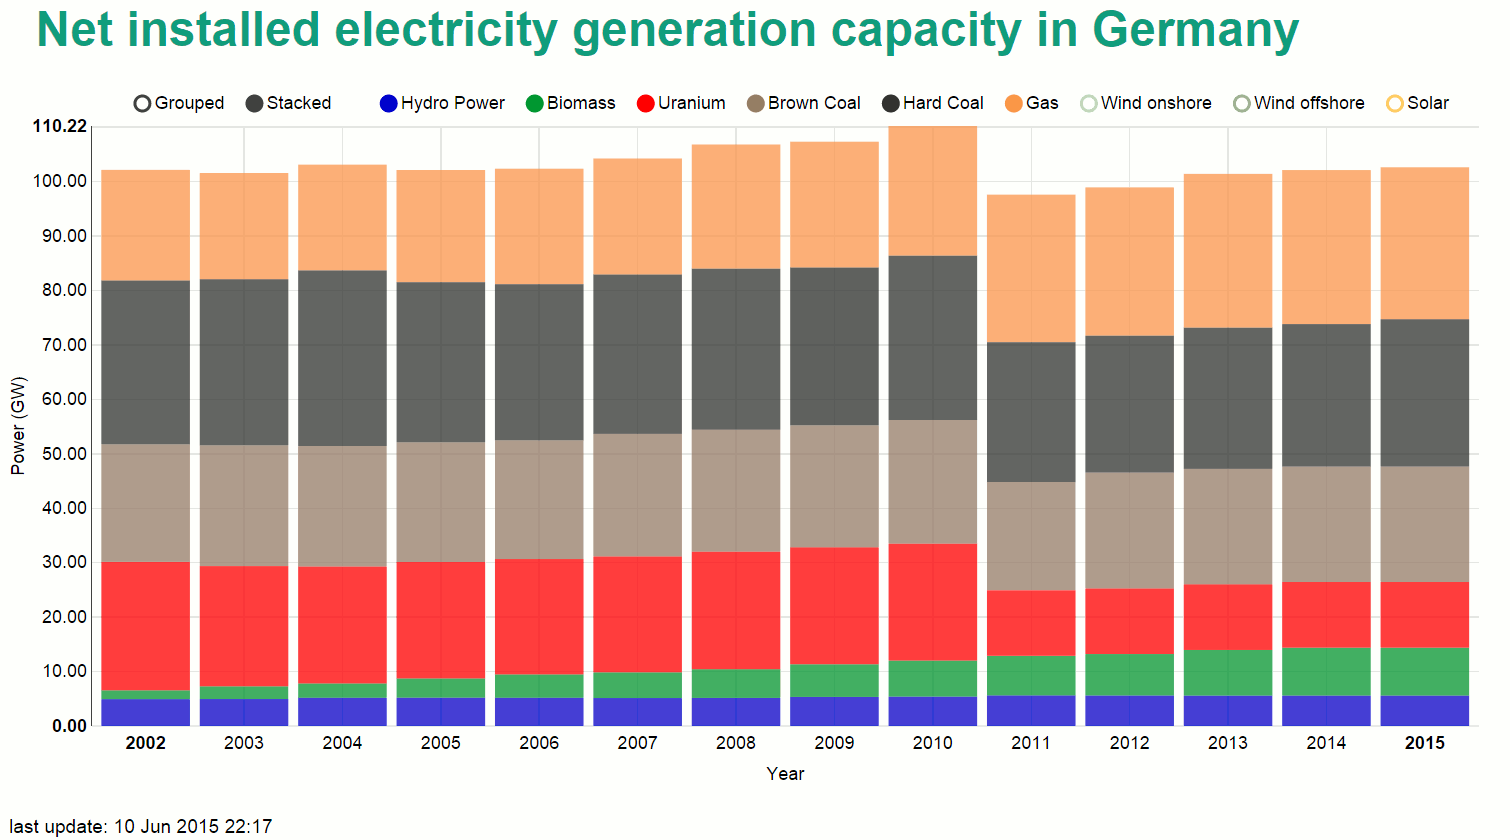 Net installed electricity generation capacity in Germany